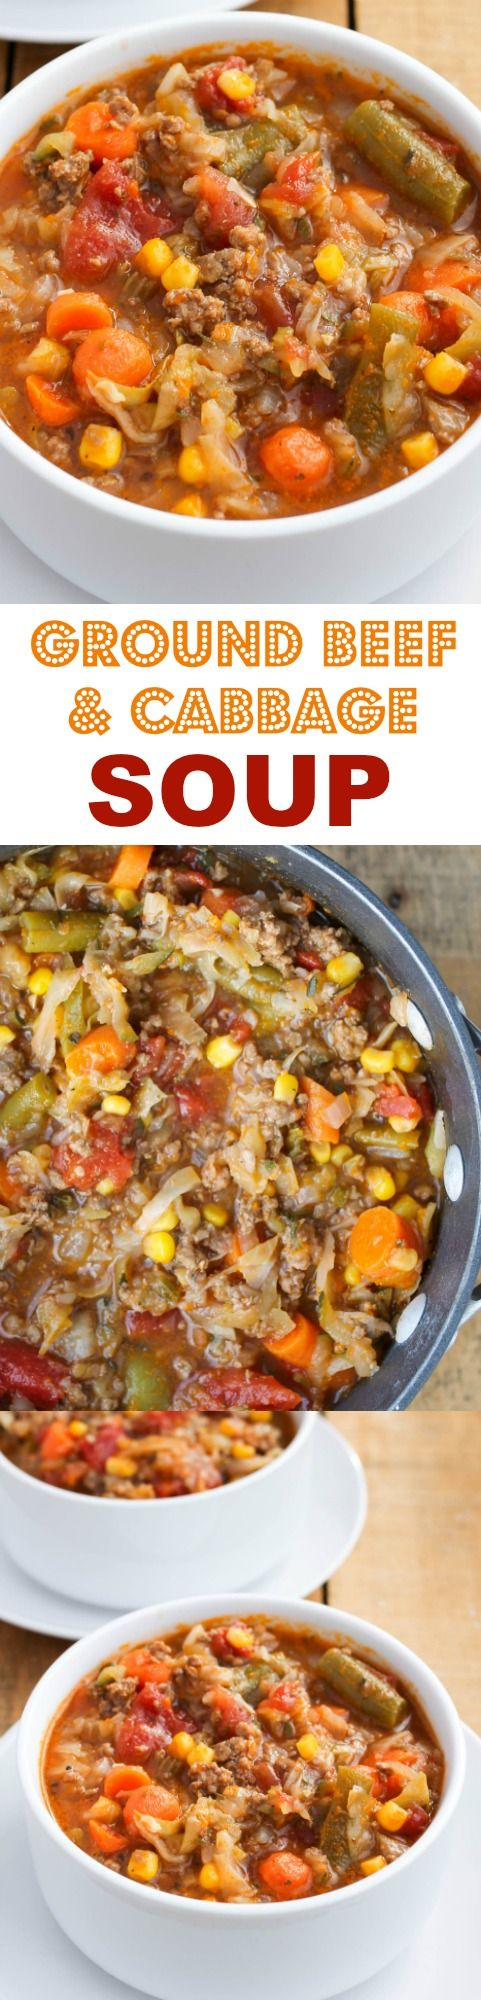 Ground Beef and Cabbage Soup - a quick, easy and budget-friendly soup recipe that's great for using up garden vegetables and frozen produce!